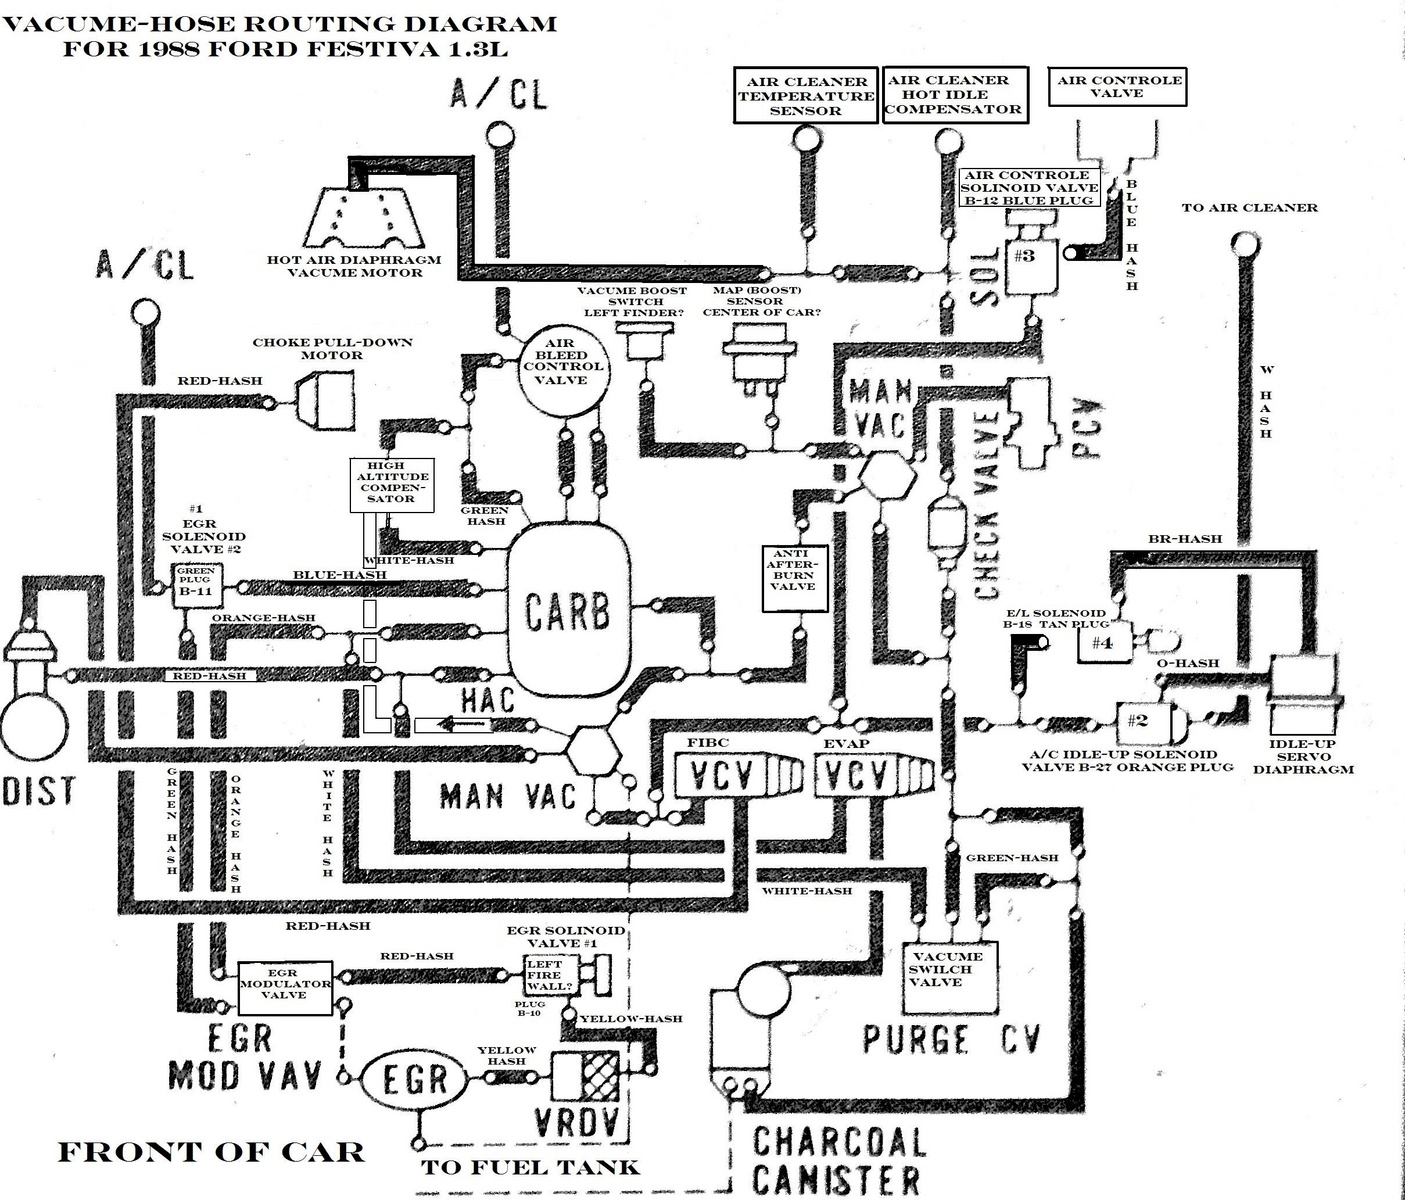 1978 Ford Festiva Wiring Diagram Opinions About 1997 F150 Harness Kits Free Download Engine Image For User Manual 1973 Alternator